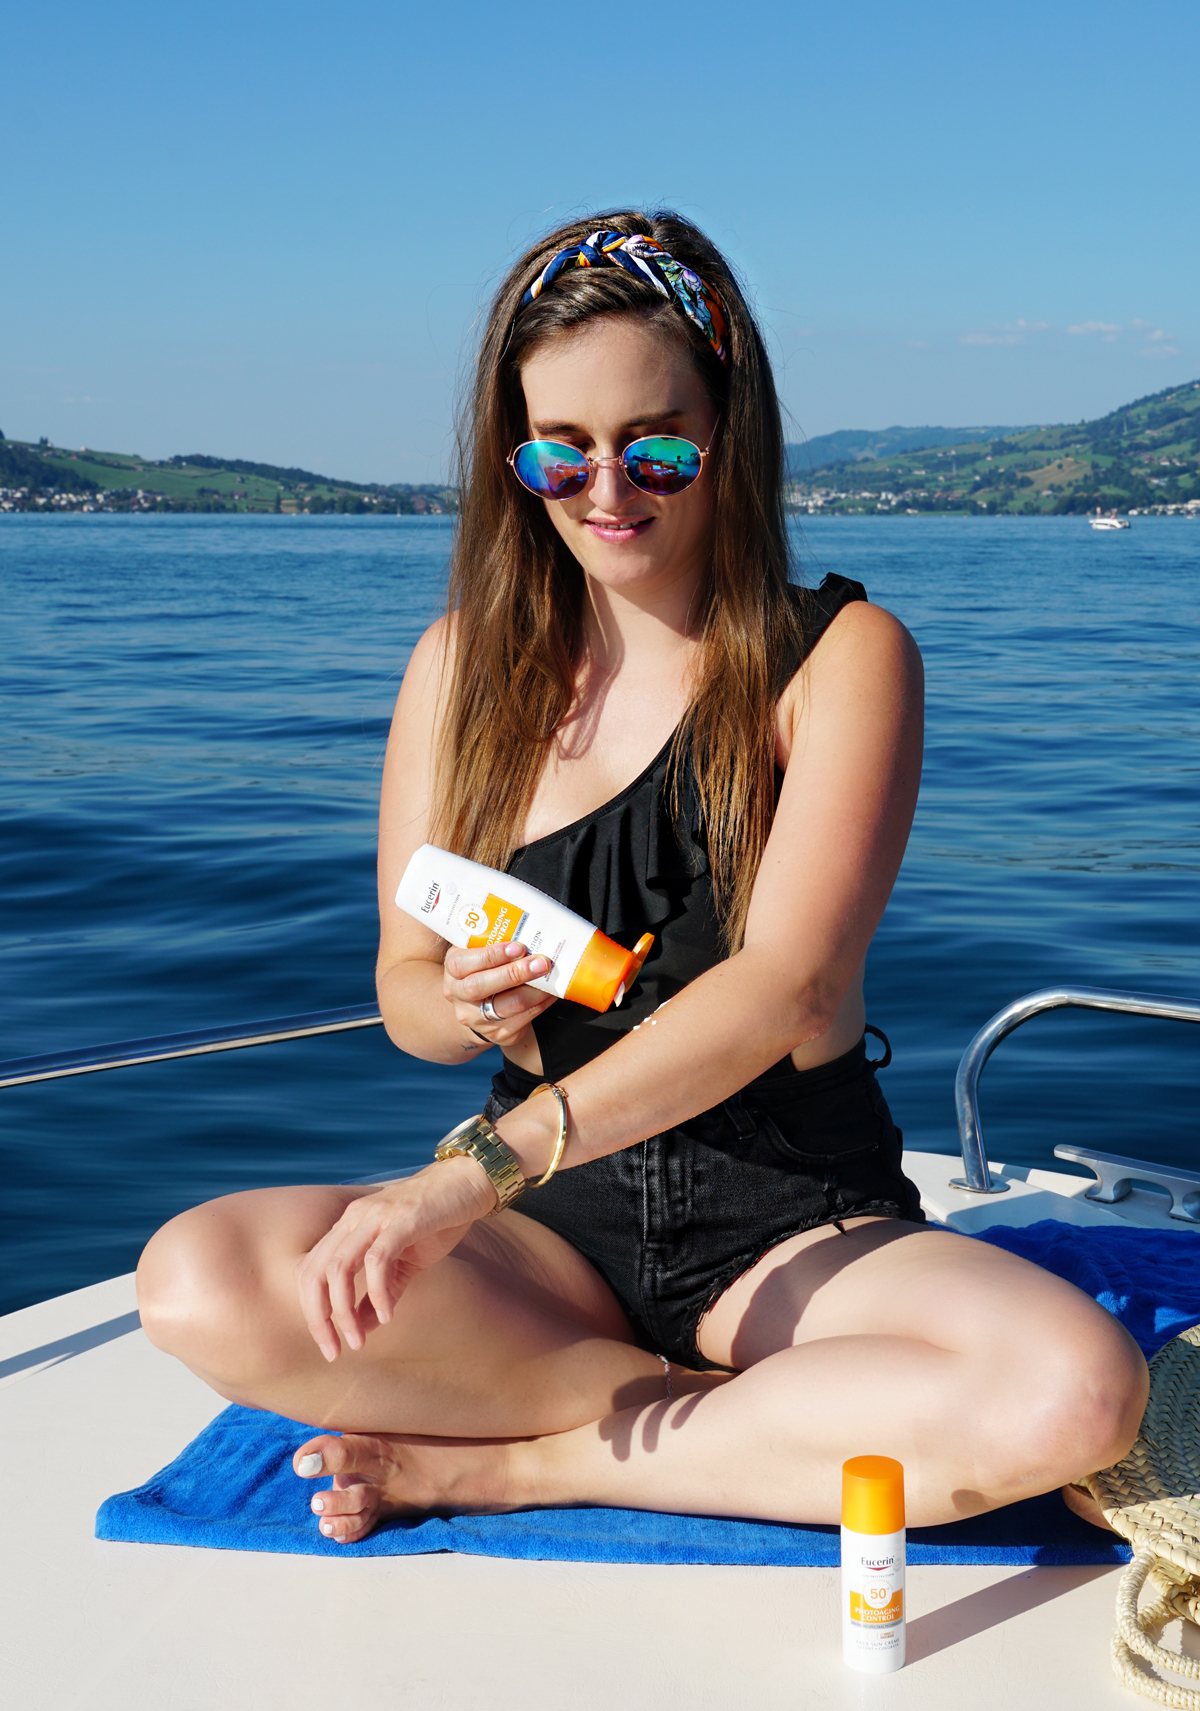 Andrea Steiner, fashion blogger from Strawberries n Champagne tested the Sunprotection Eucerin.